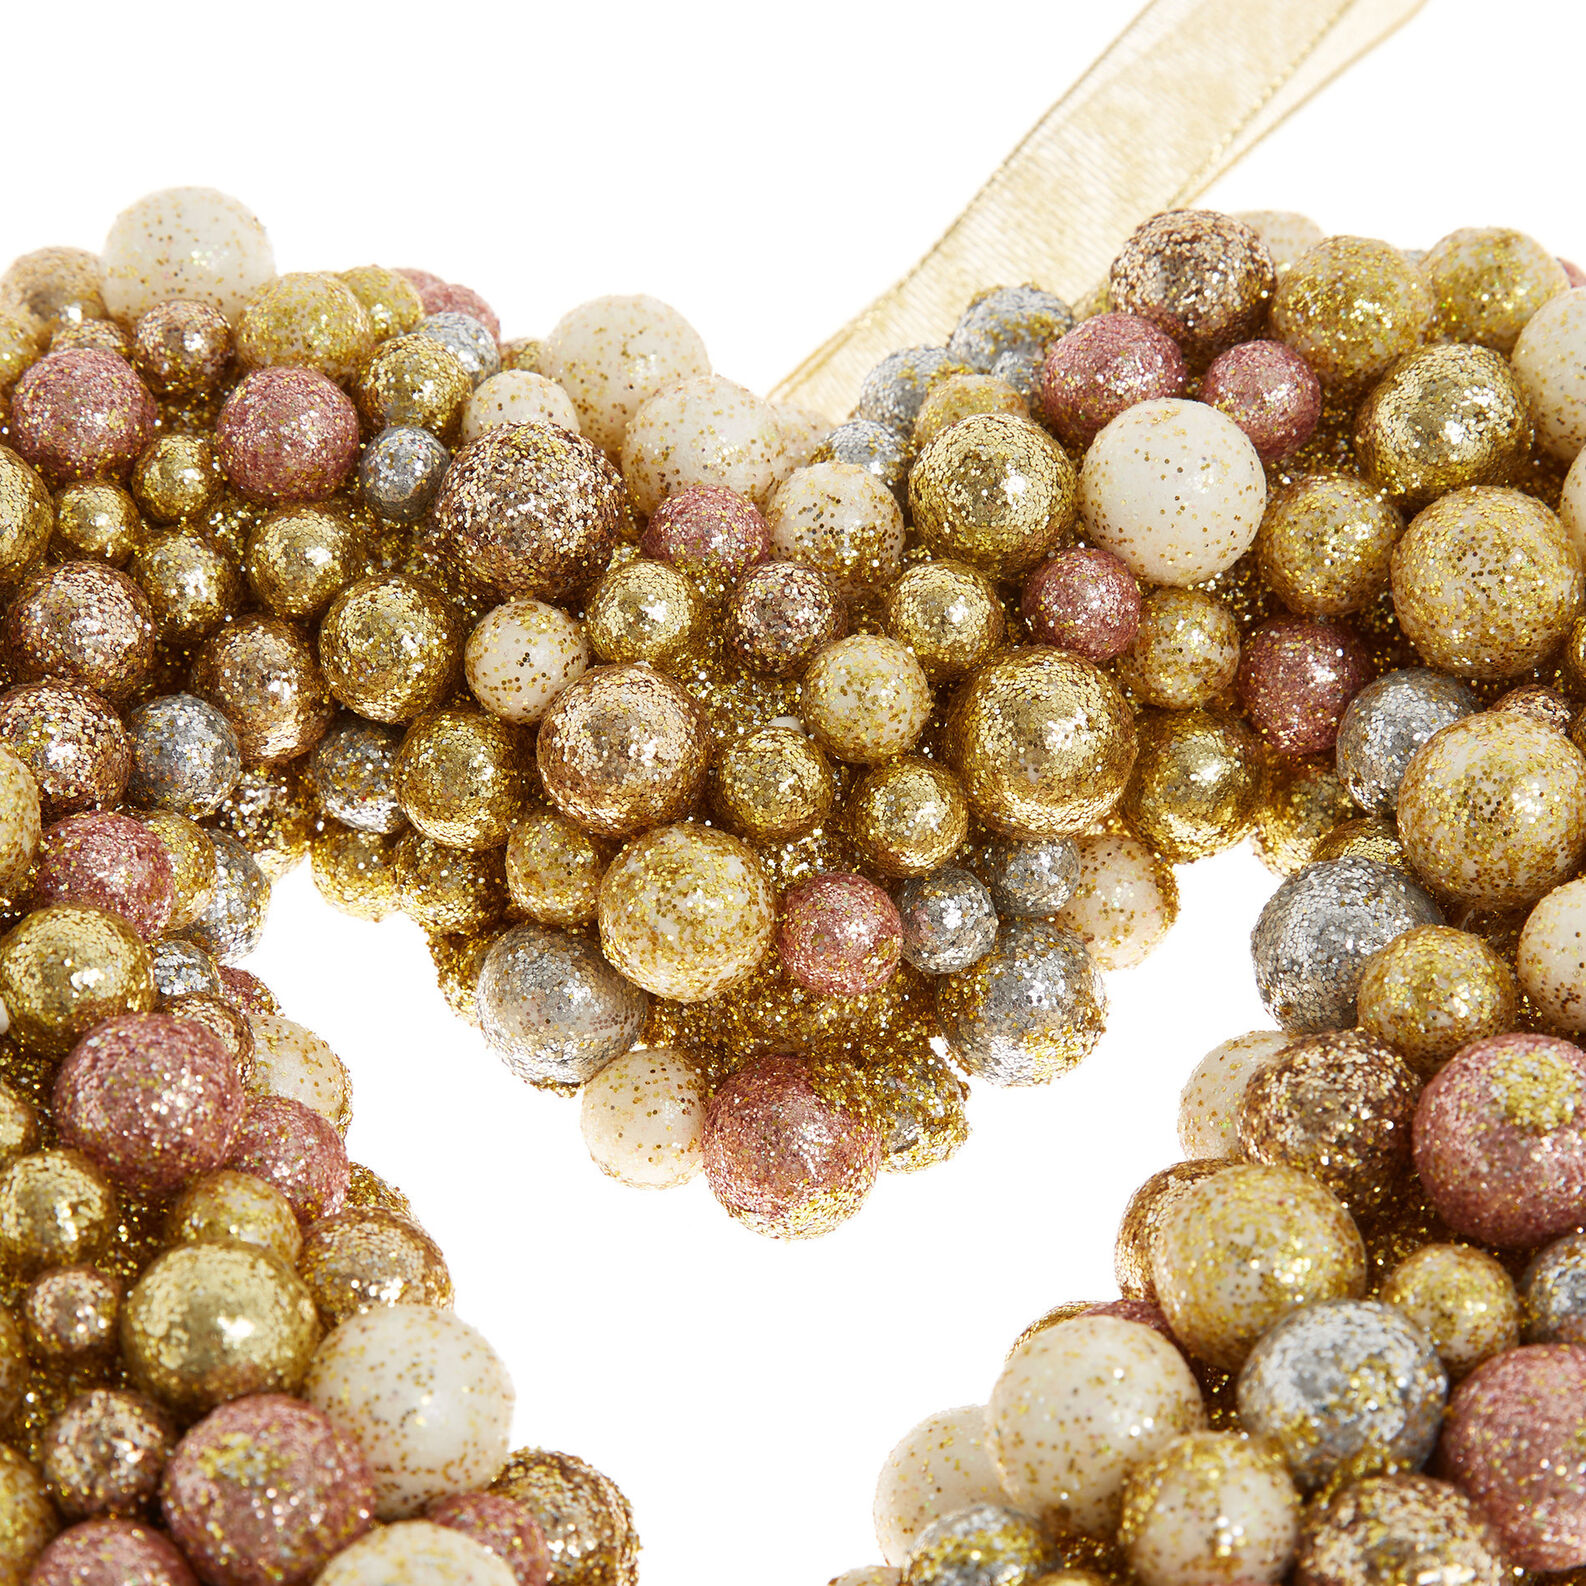 Heart-shaped wreath with glitter berries